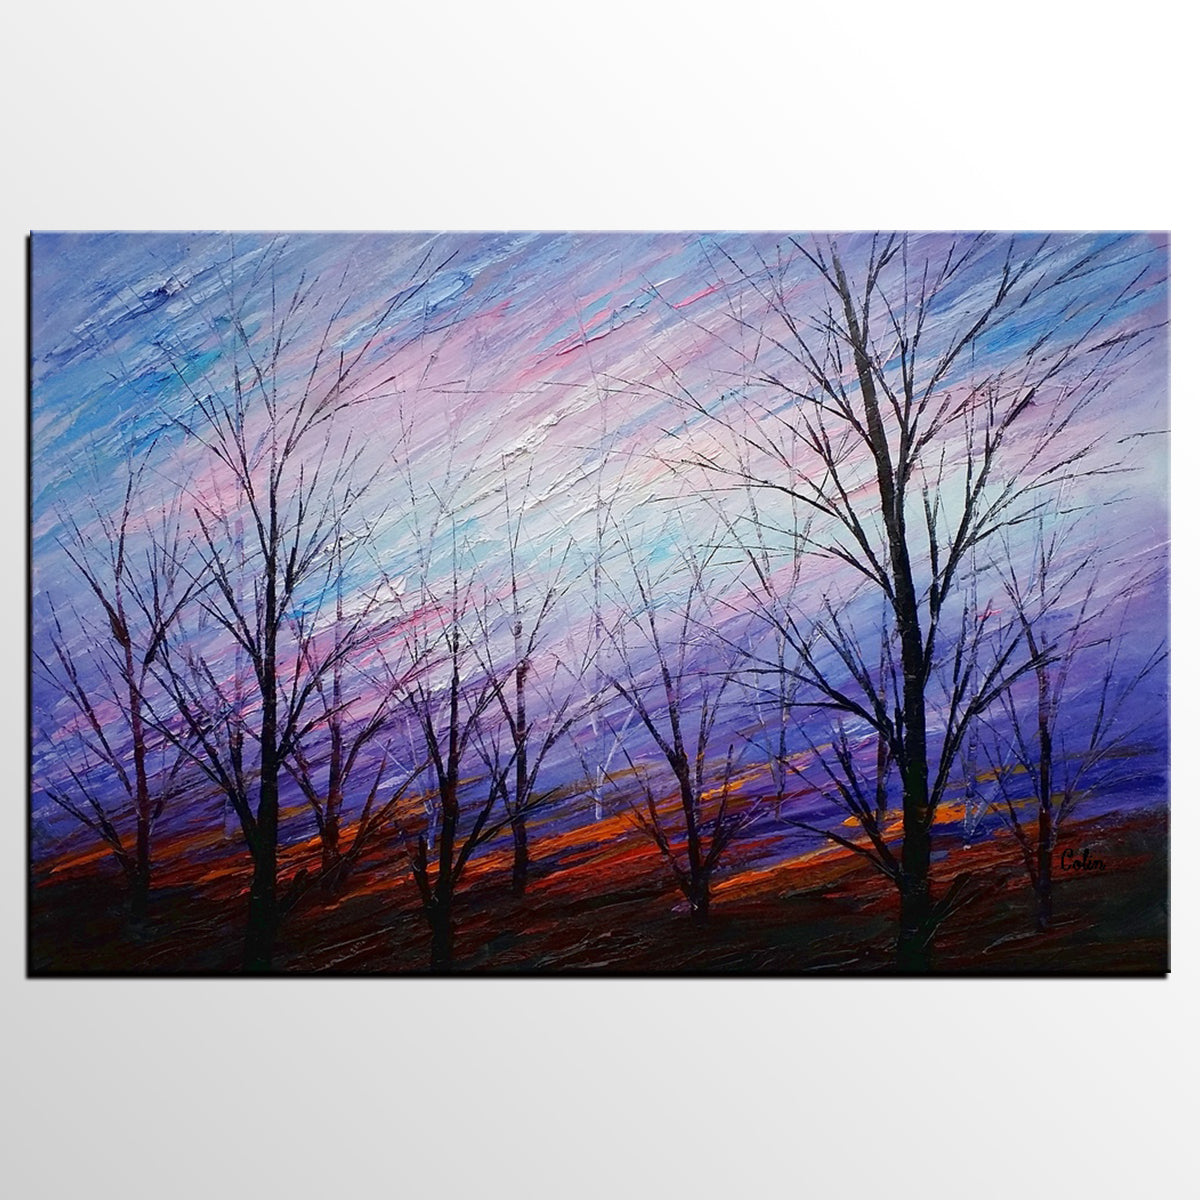 Abstract Art, Colorful Sky Painting, Oil Painting, Abstract Painting, Modern Art, Canvas Art, Living Room Wall Art, Canvas Painting